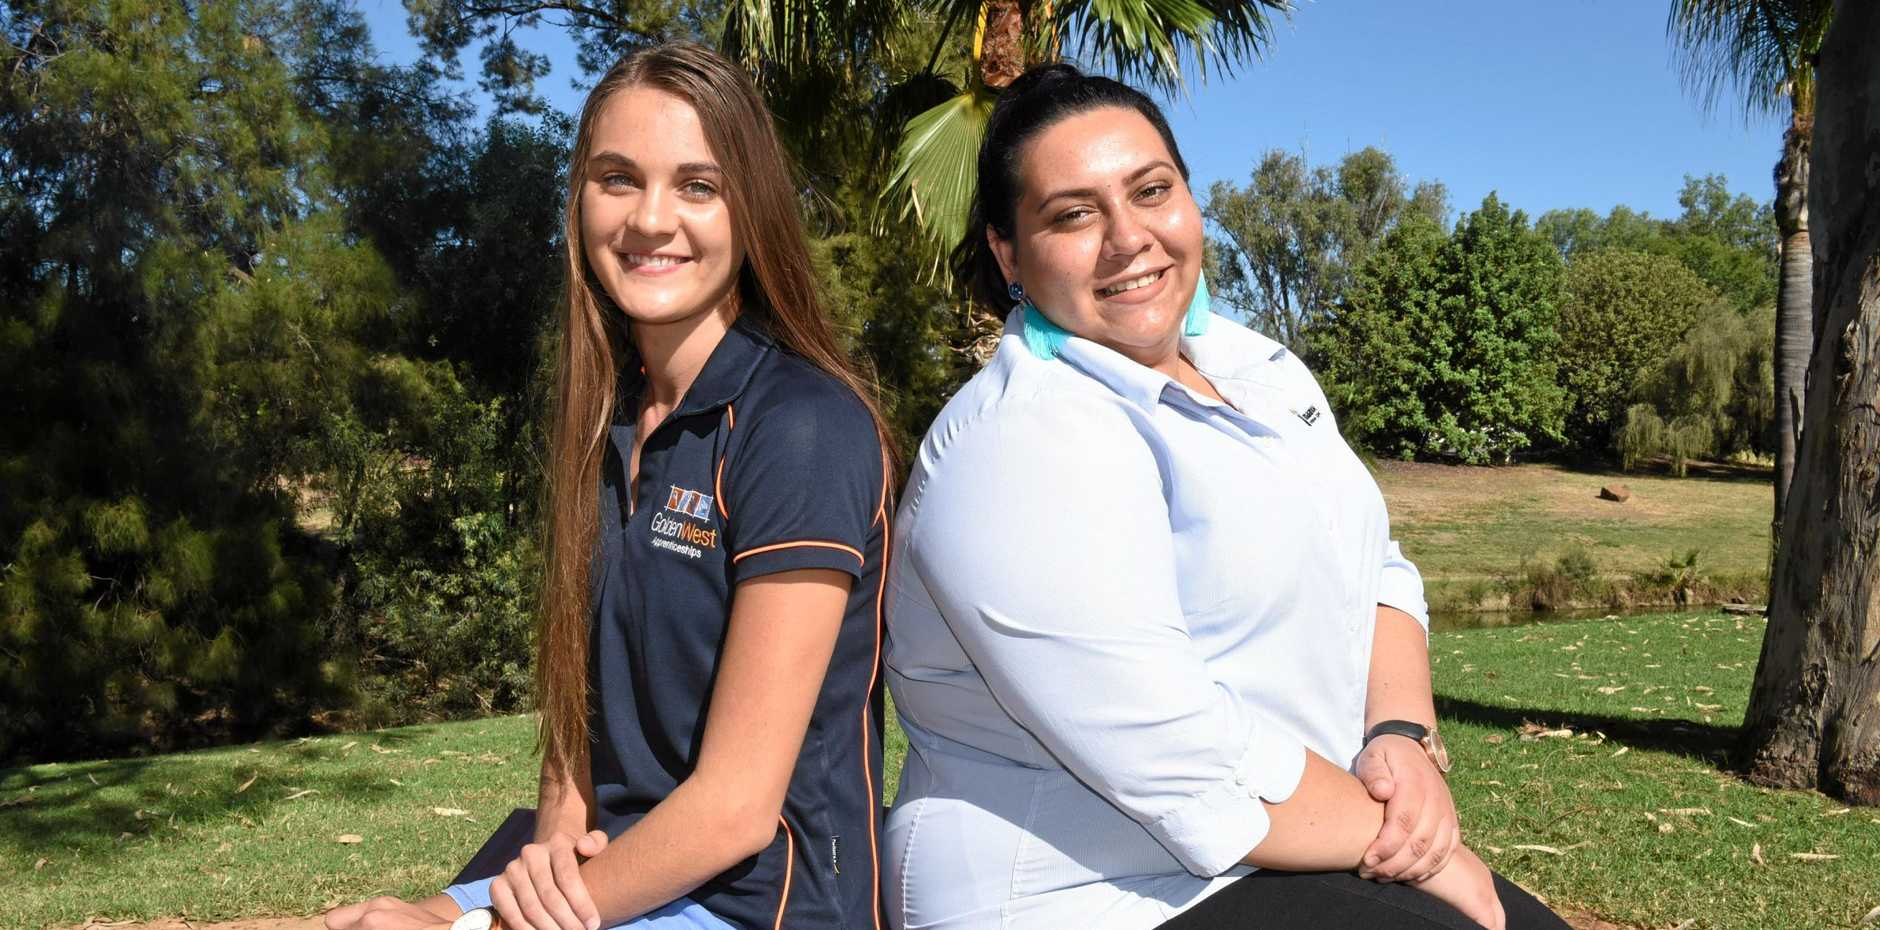 WORKING IT OUT: Rhylee Wiedman and Tayla Dennis are now increasing their skillset through training.